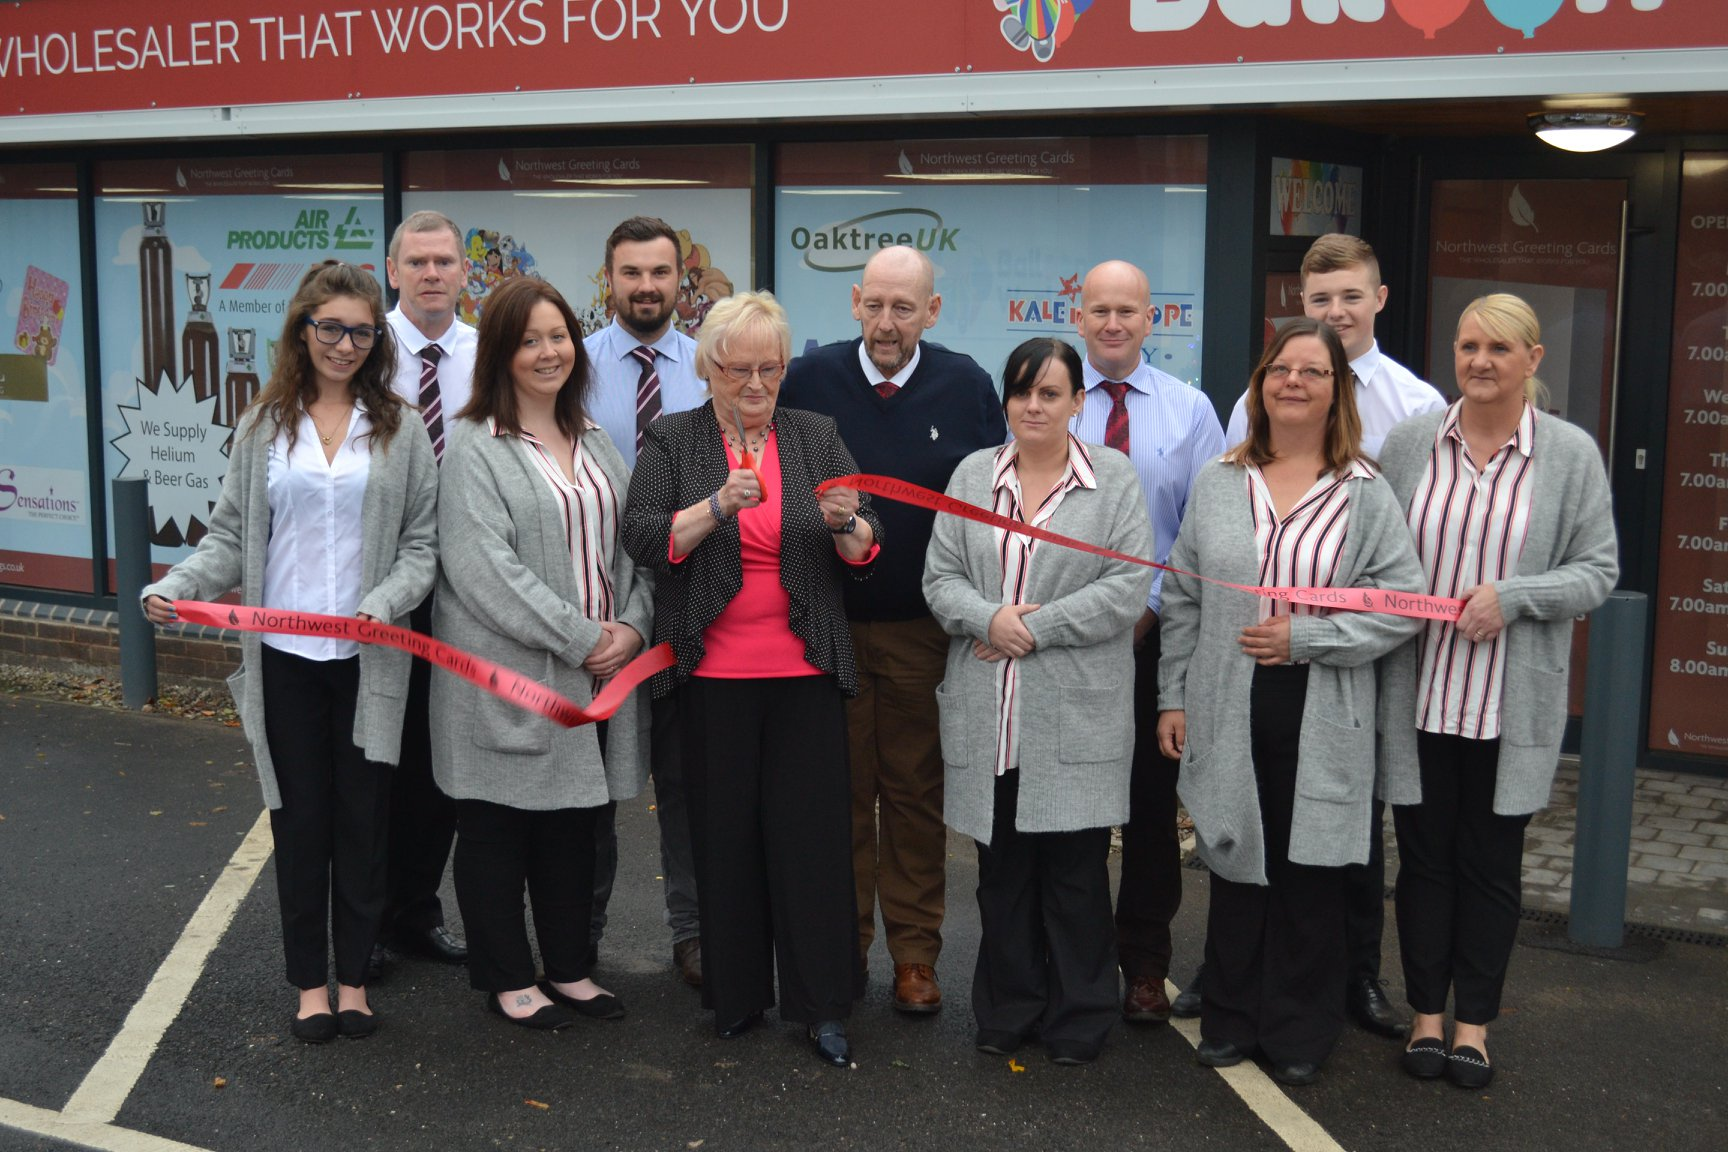 Above: Richard's mum did the honours and pronounced the new wholesalers open for business.